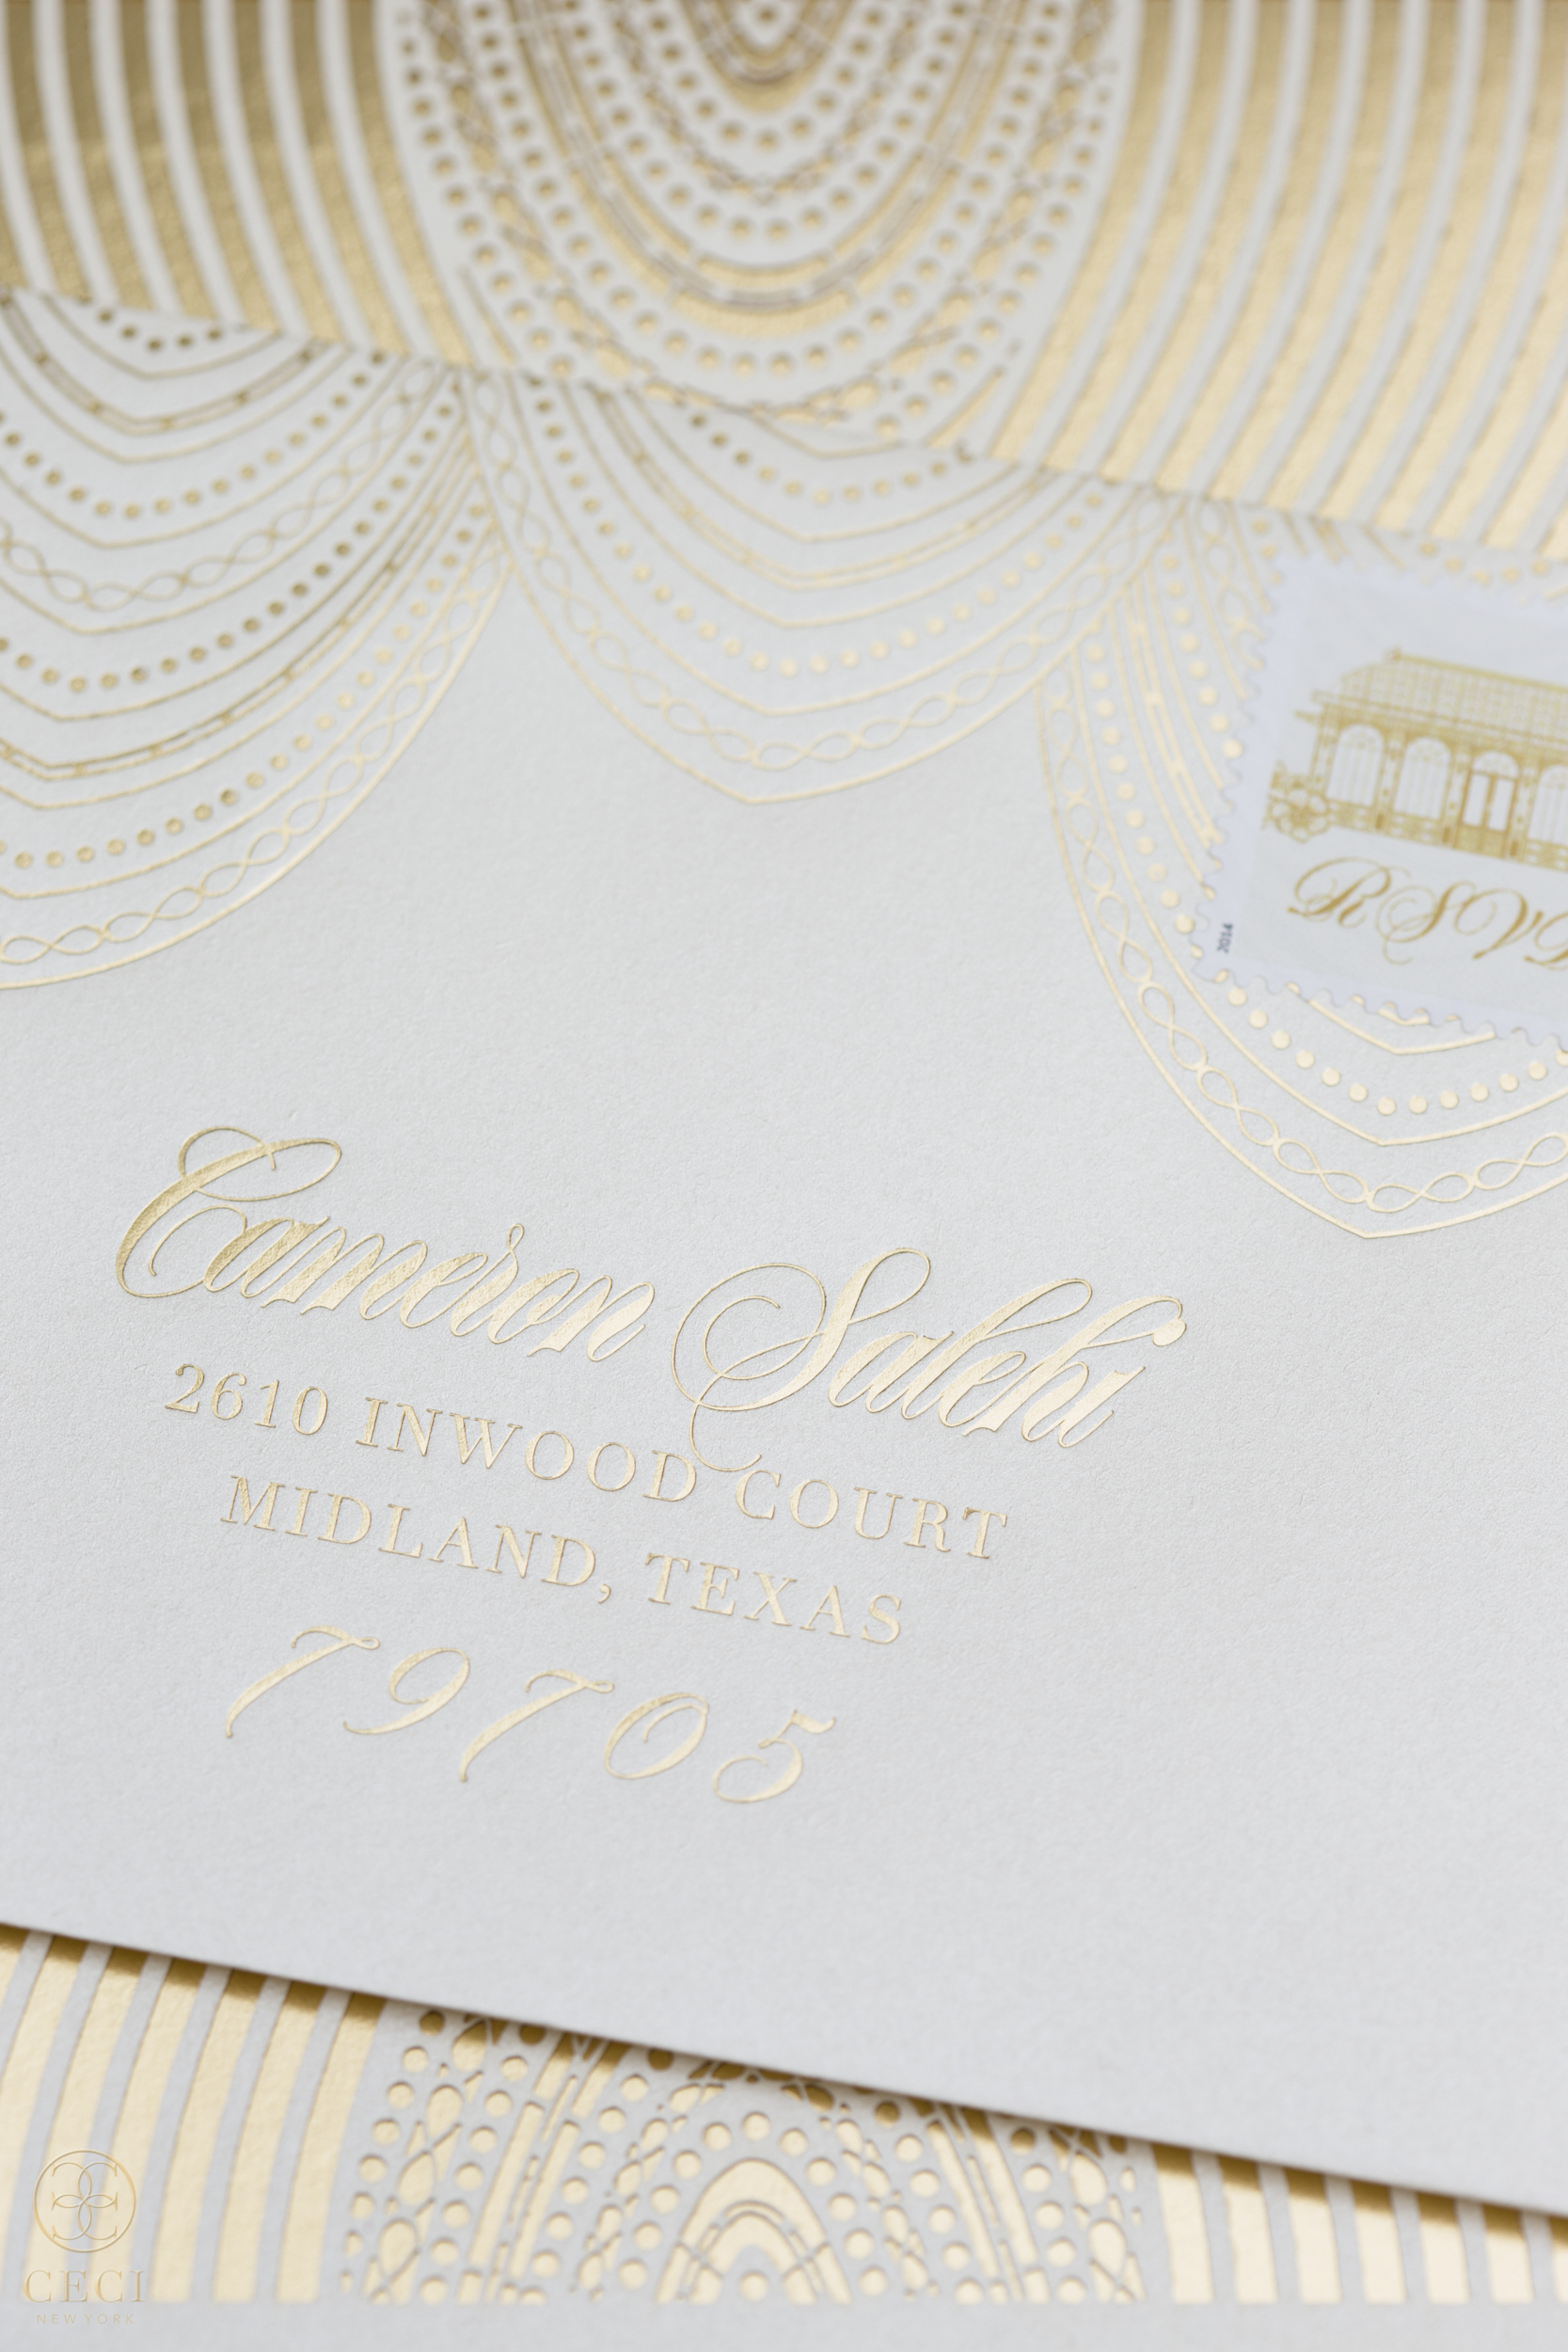 gold_deco_luxe_lavish_wedding_couture_luxury_invitation_design_lasercut_foil_glam_gilded_modern_sophisticated_midland_texas_invitations_suite-5.jpg